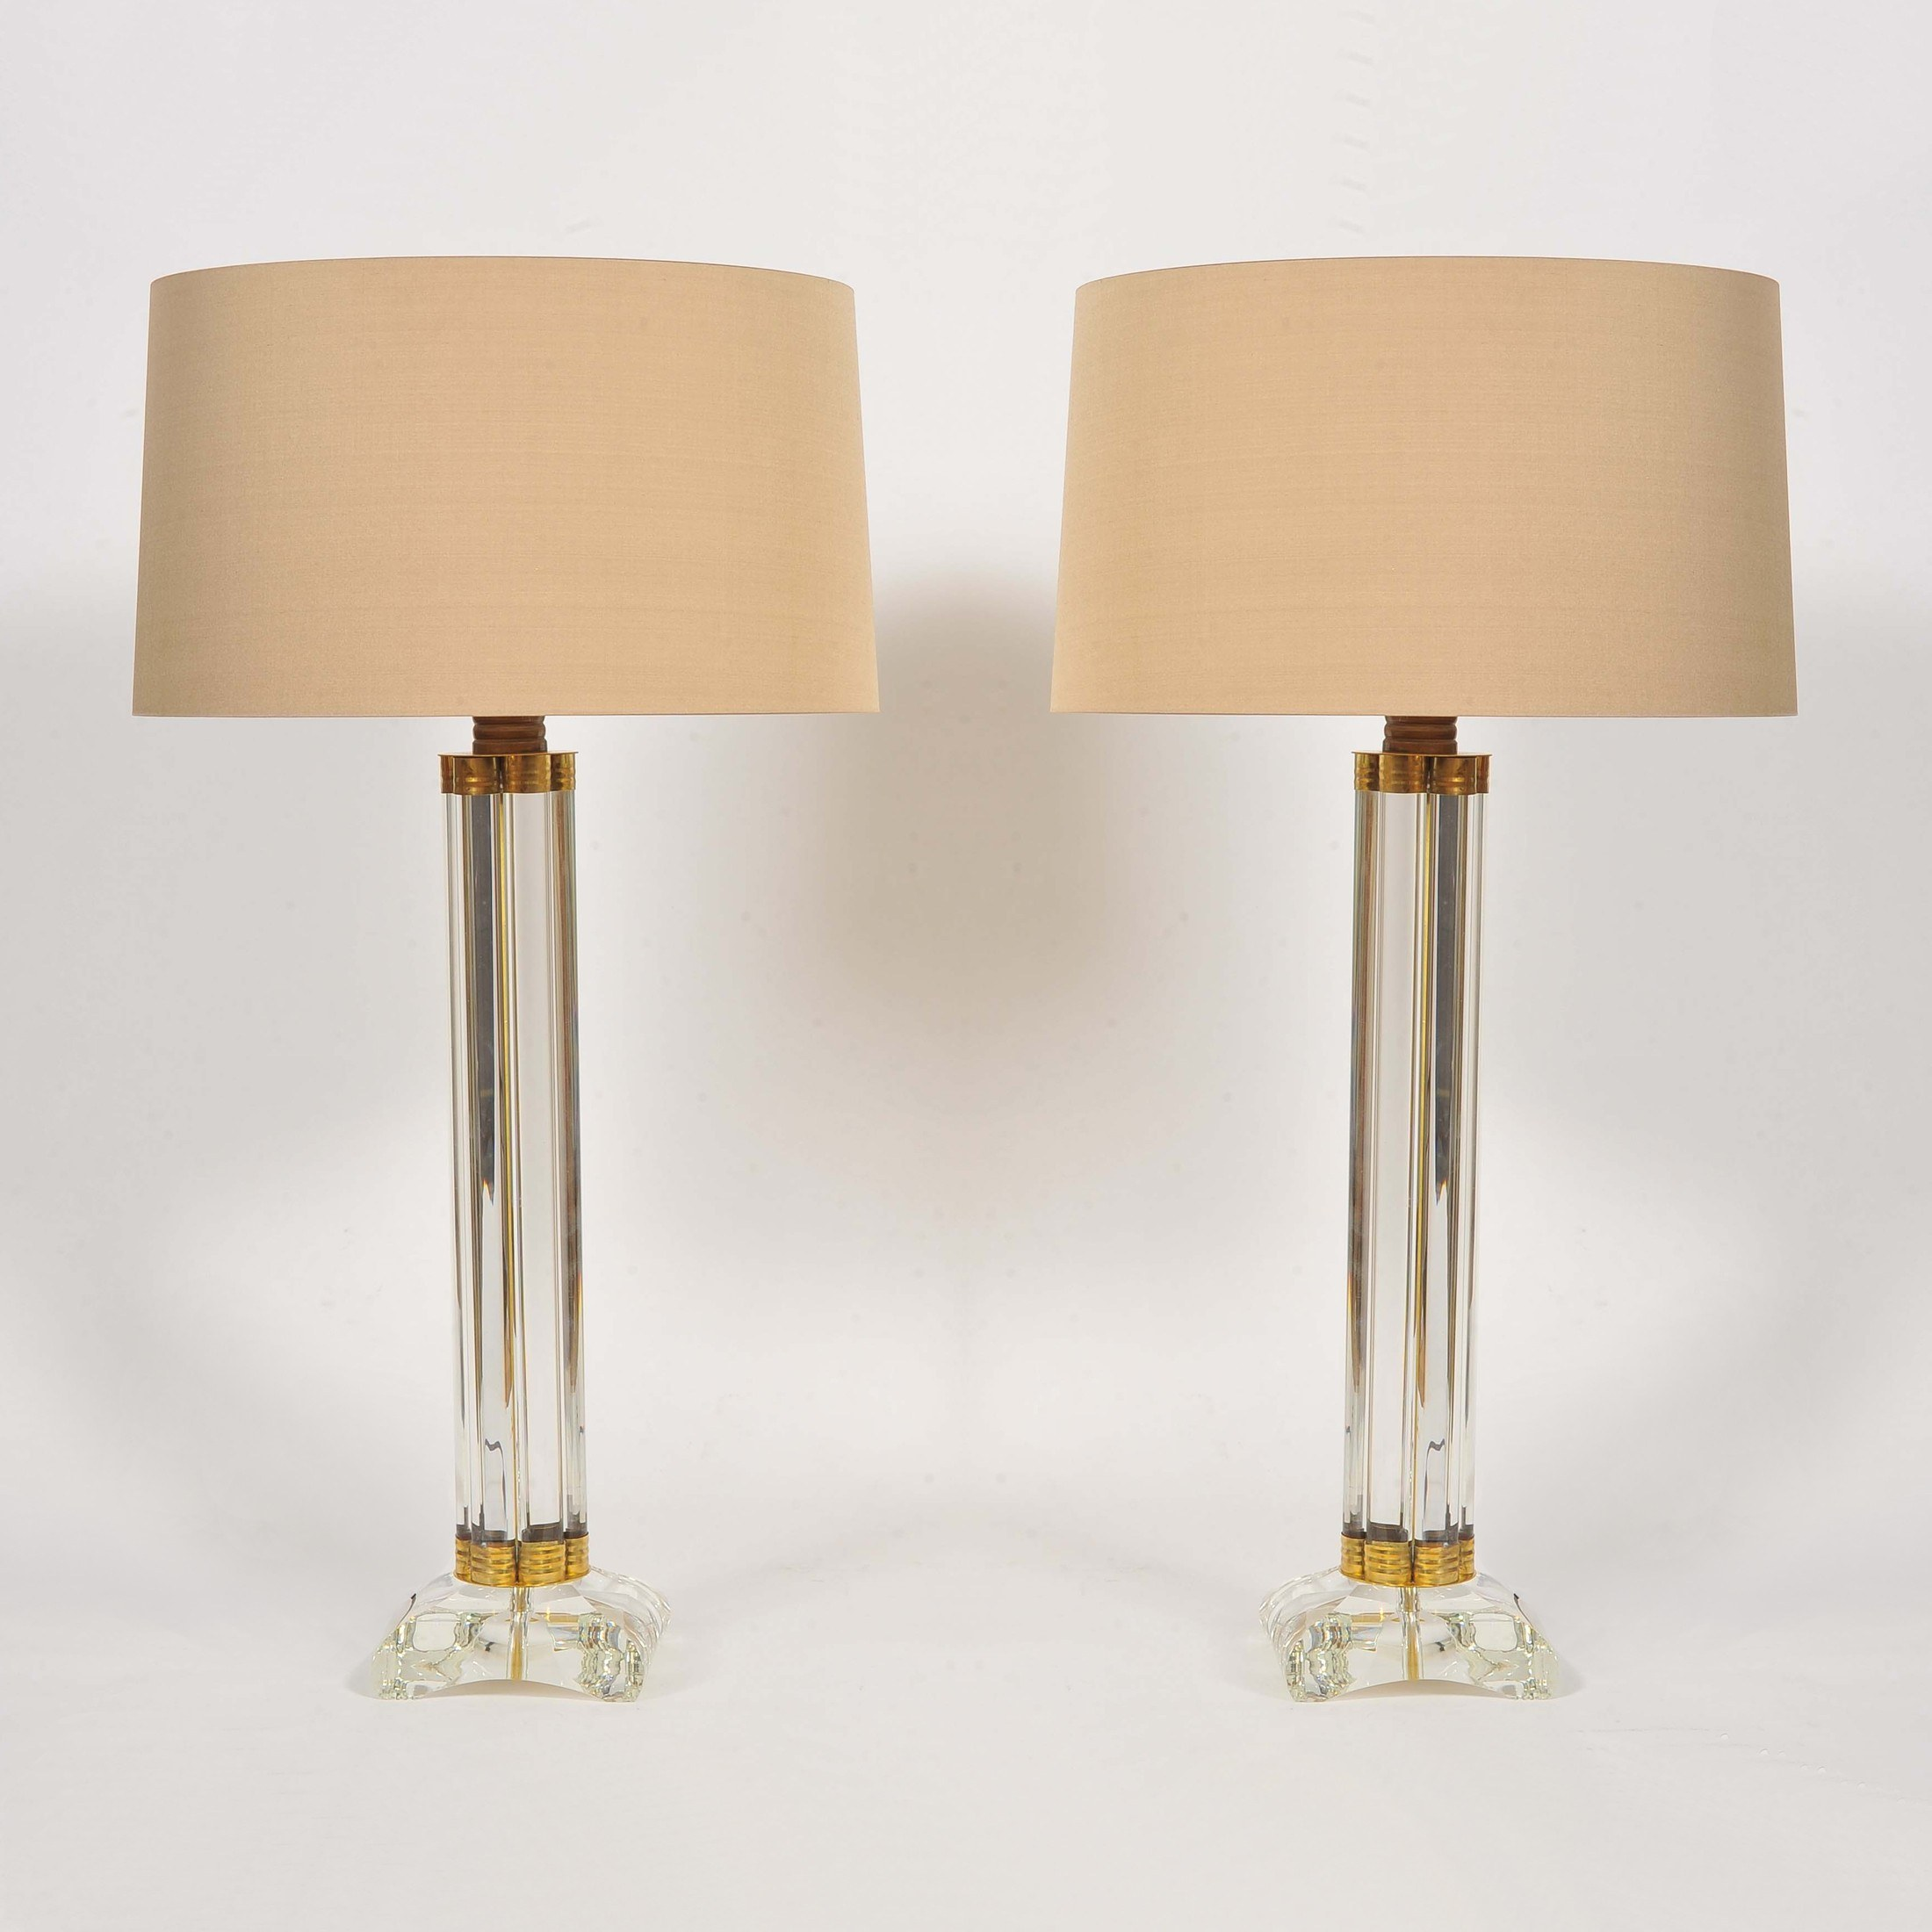 The image for Valerie Wade Lt674 Pair Italian Murano Glass Column Lamps 01